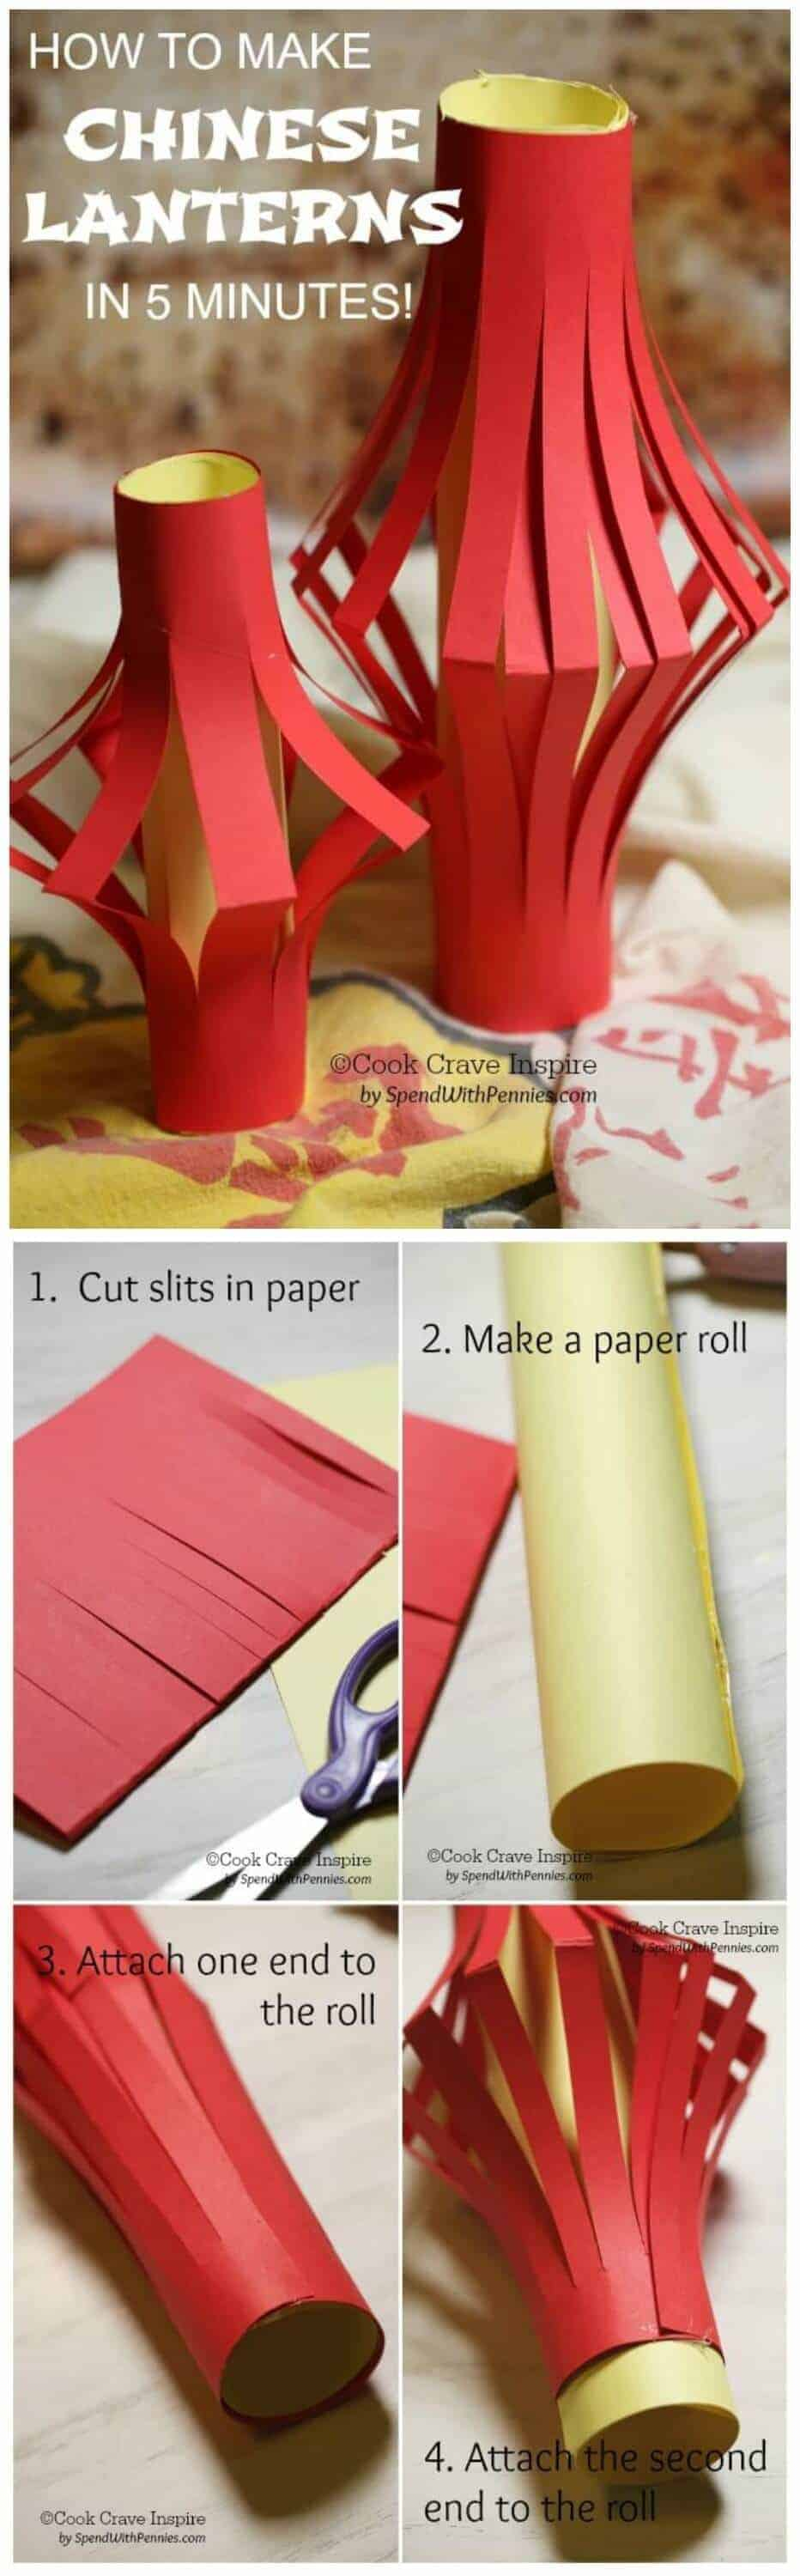 Steps for making paper chinese lanterns